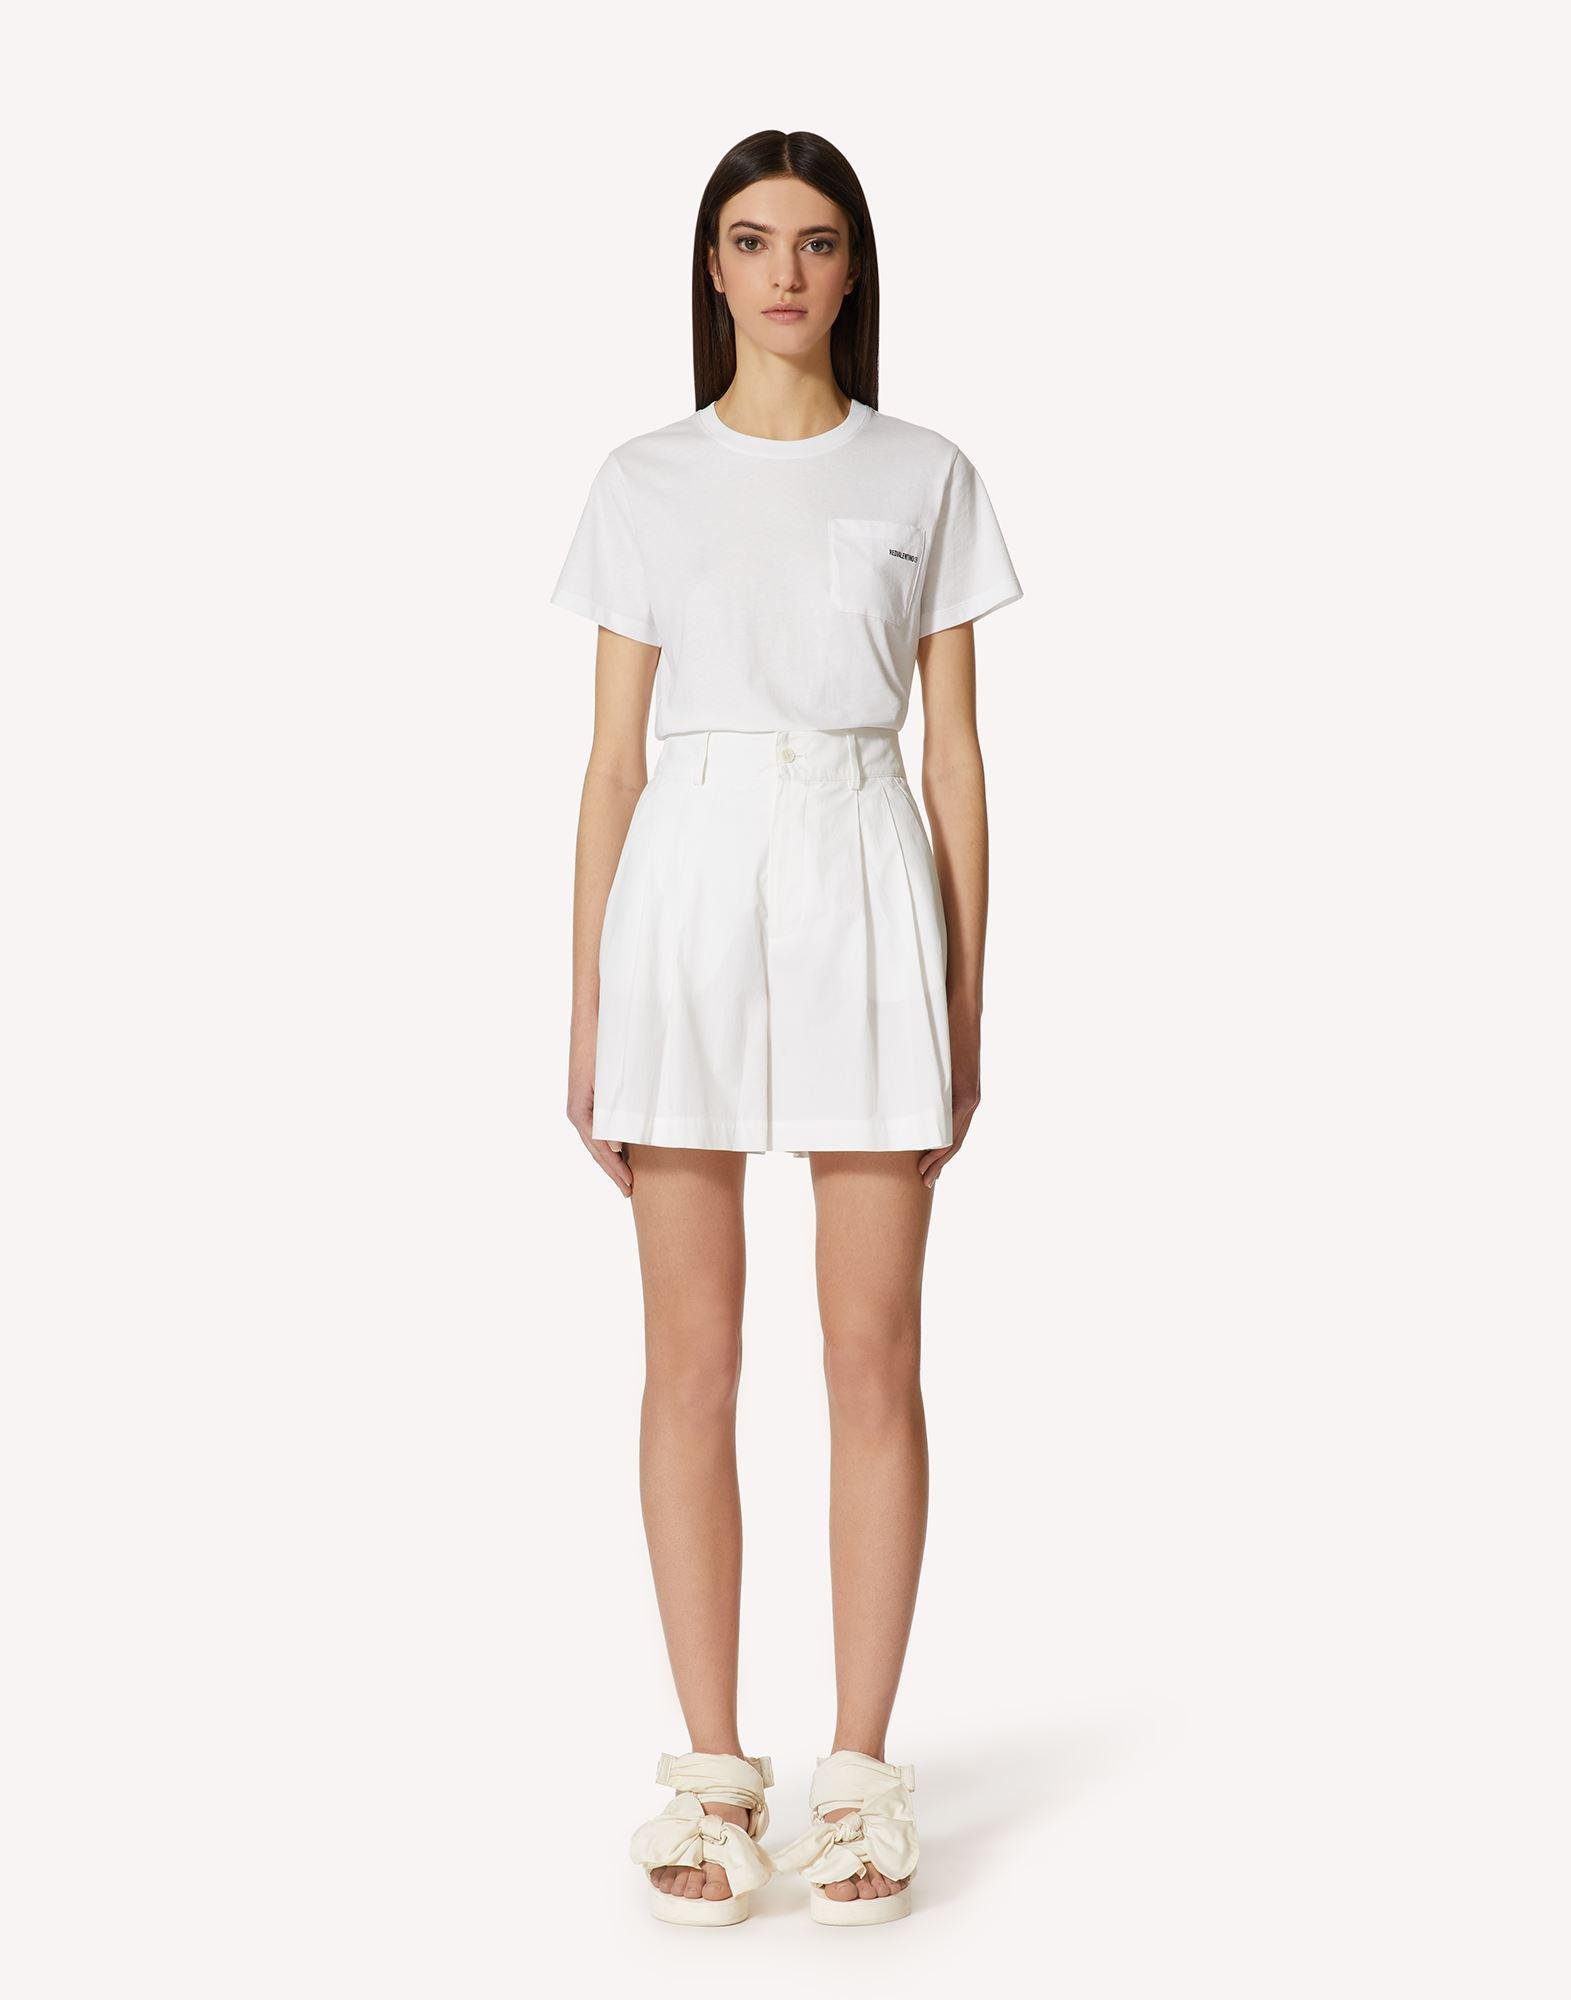 T-SHIRT WITH REDVALENTINO EMBROIDERY